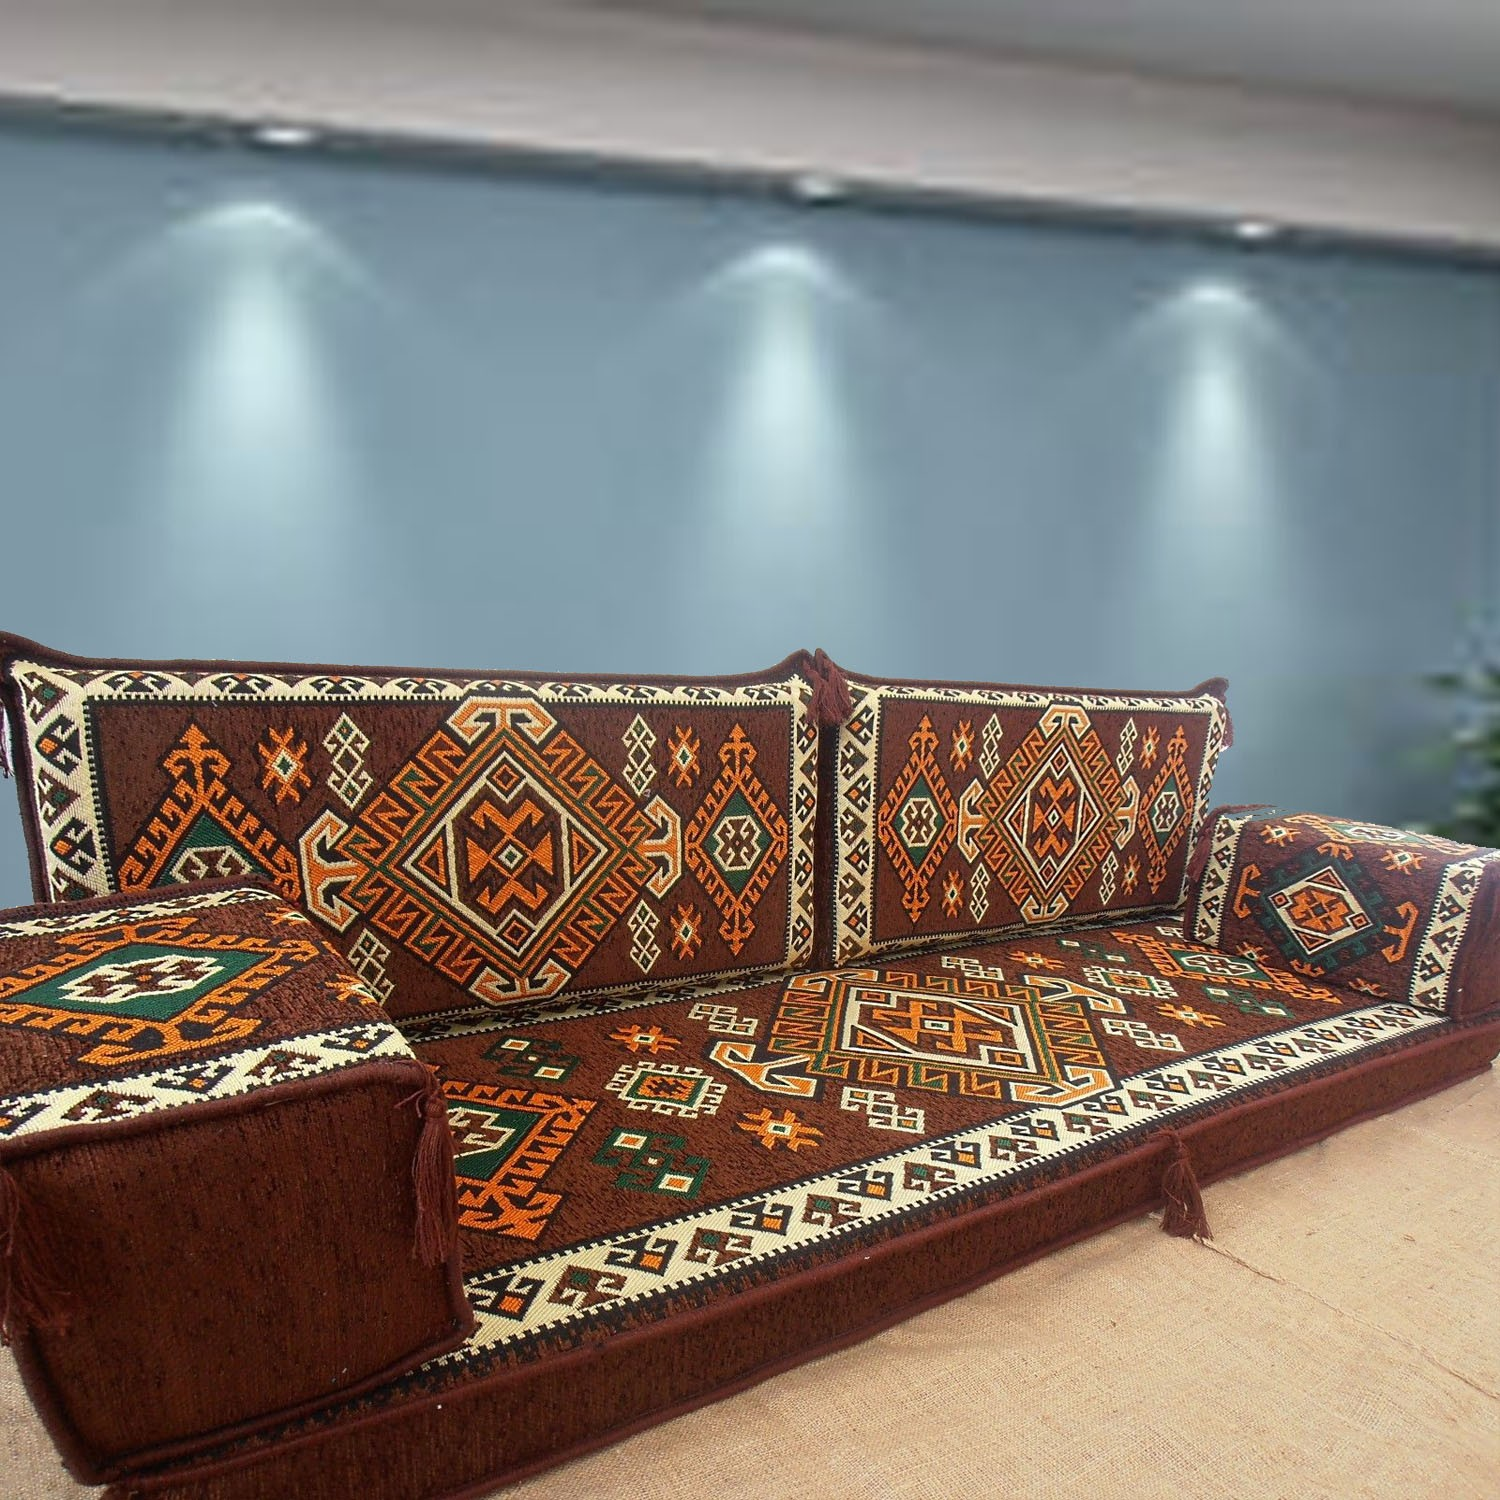 Floor sofa with double back pillows - SHI_FS265